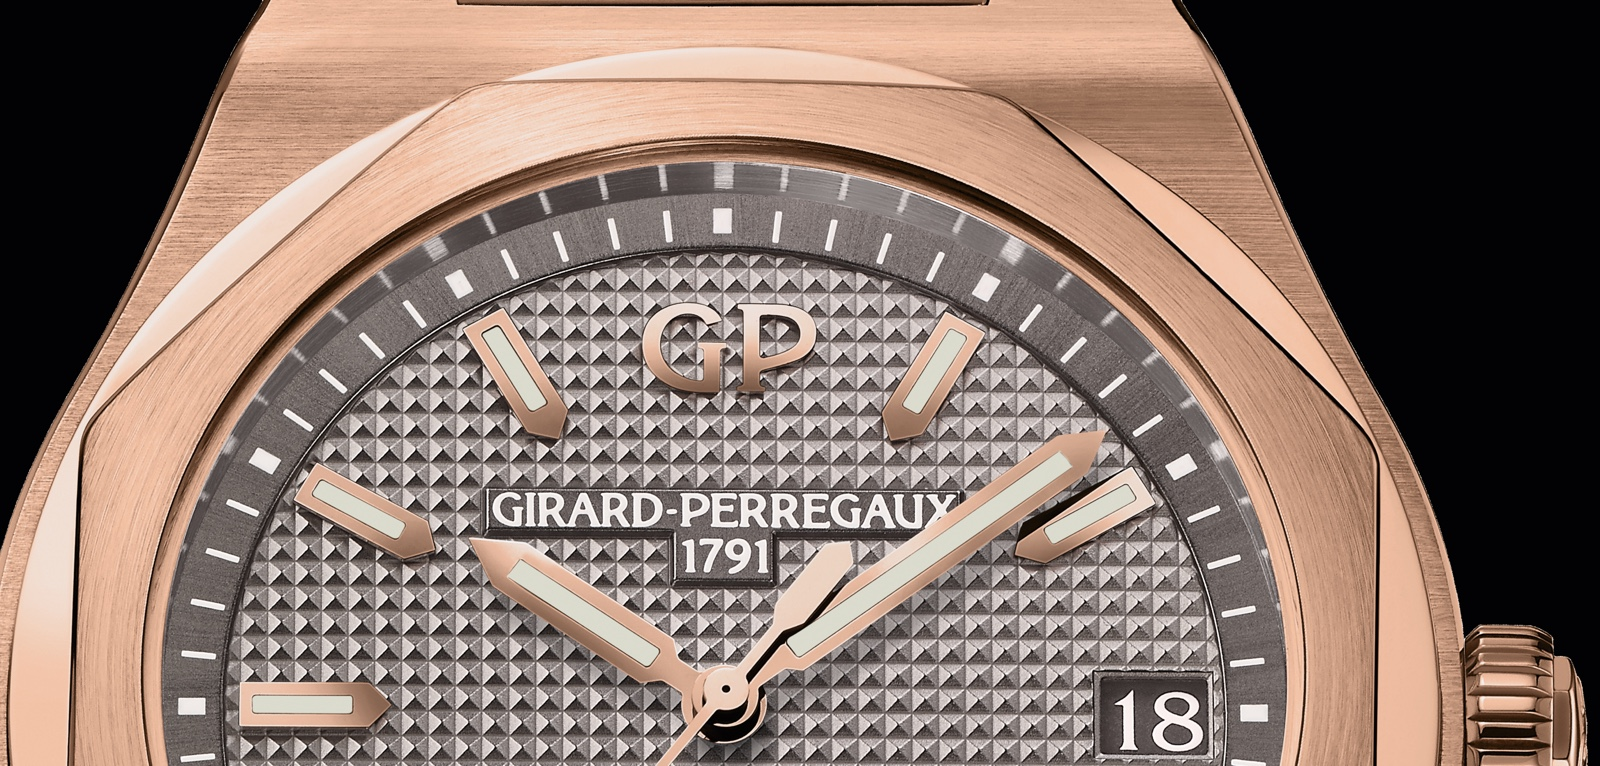 Girard-Perregaux Laureato 2017 Special Edition Only Watch